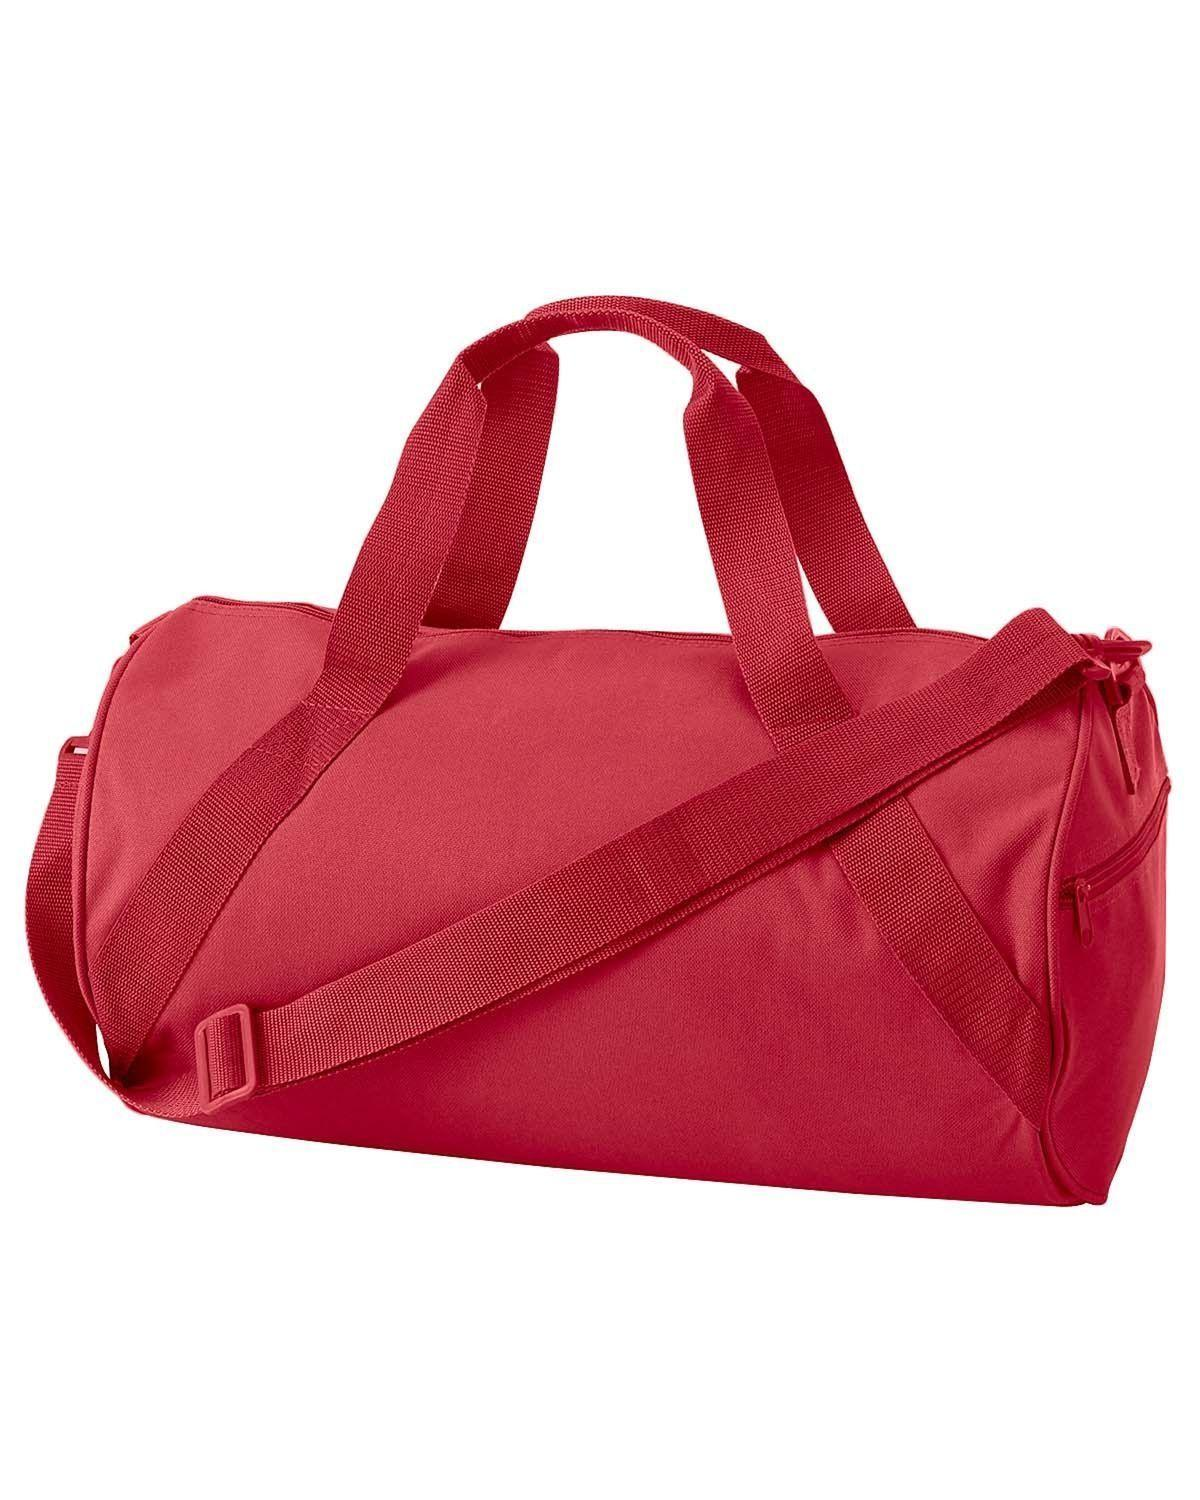 Liberty Recycled Duffle, Bag, Sports 8805